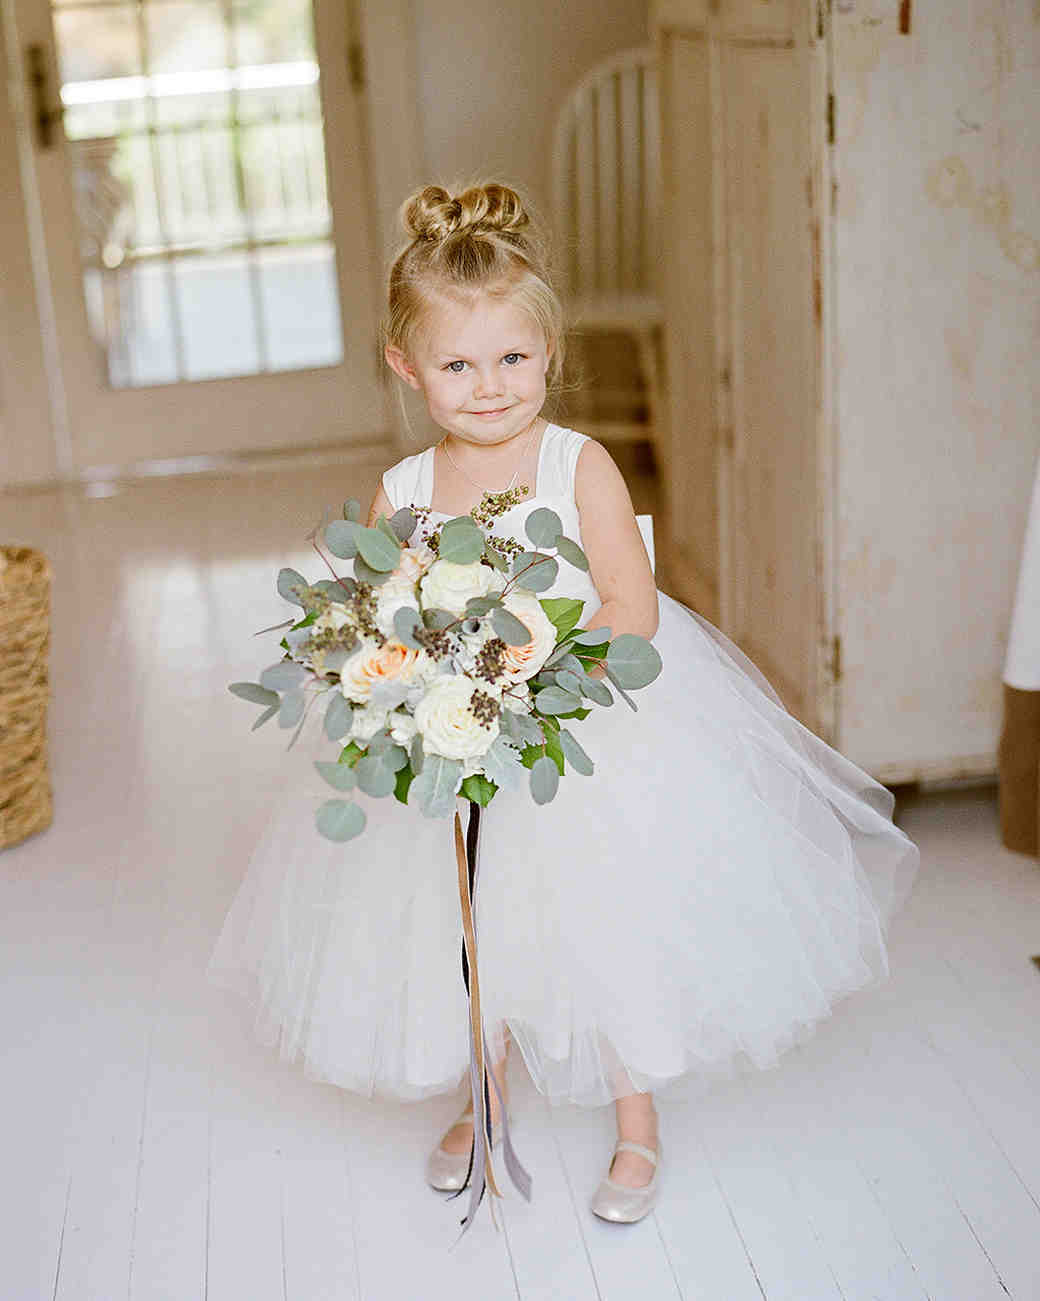 anne and staton wedding flower girl